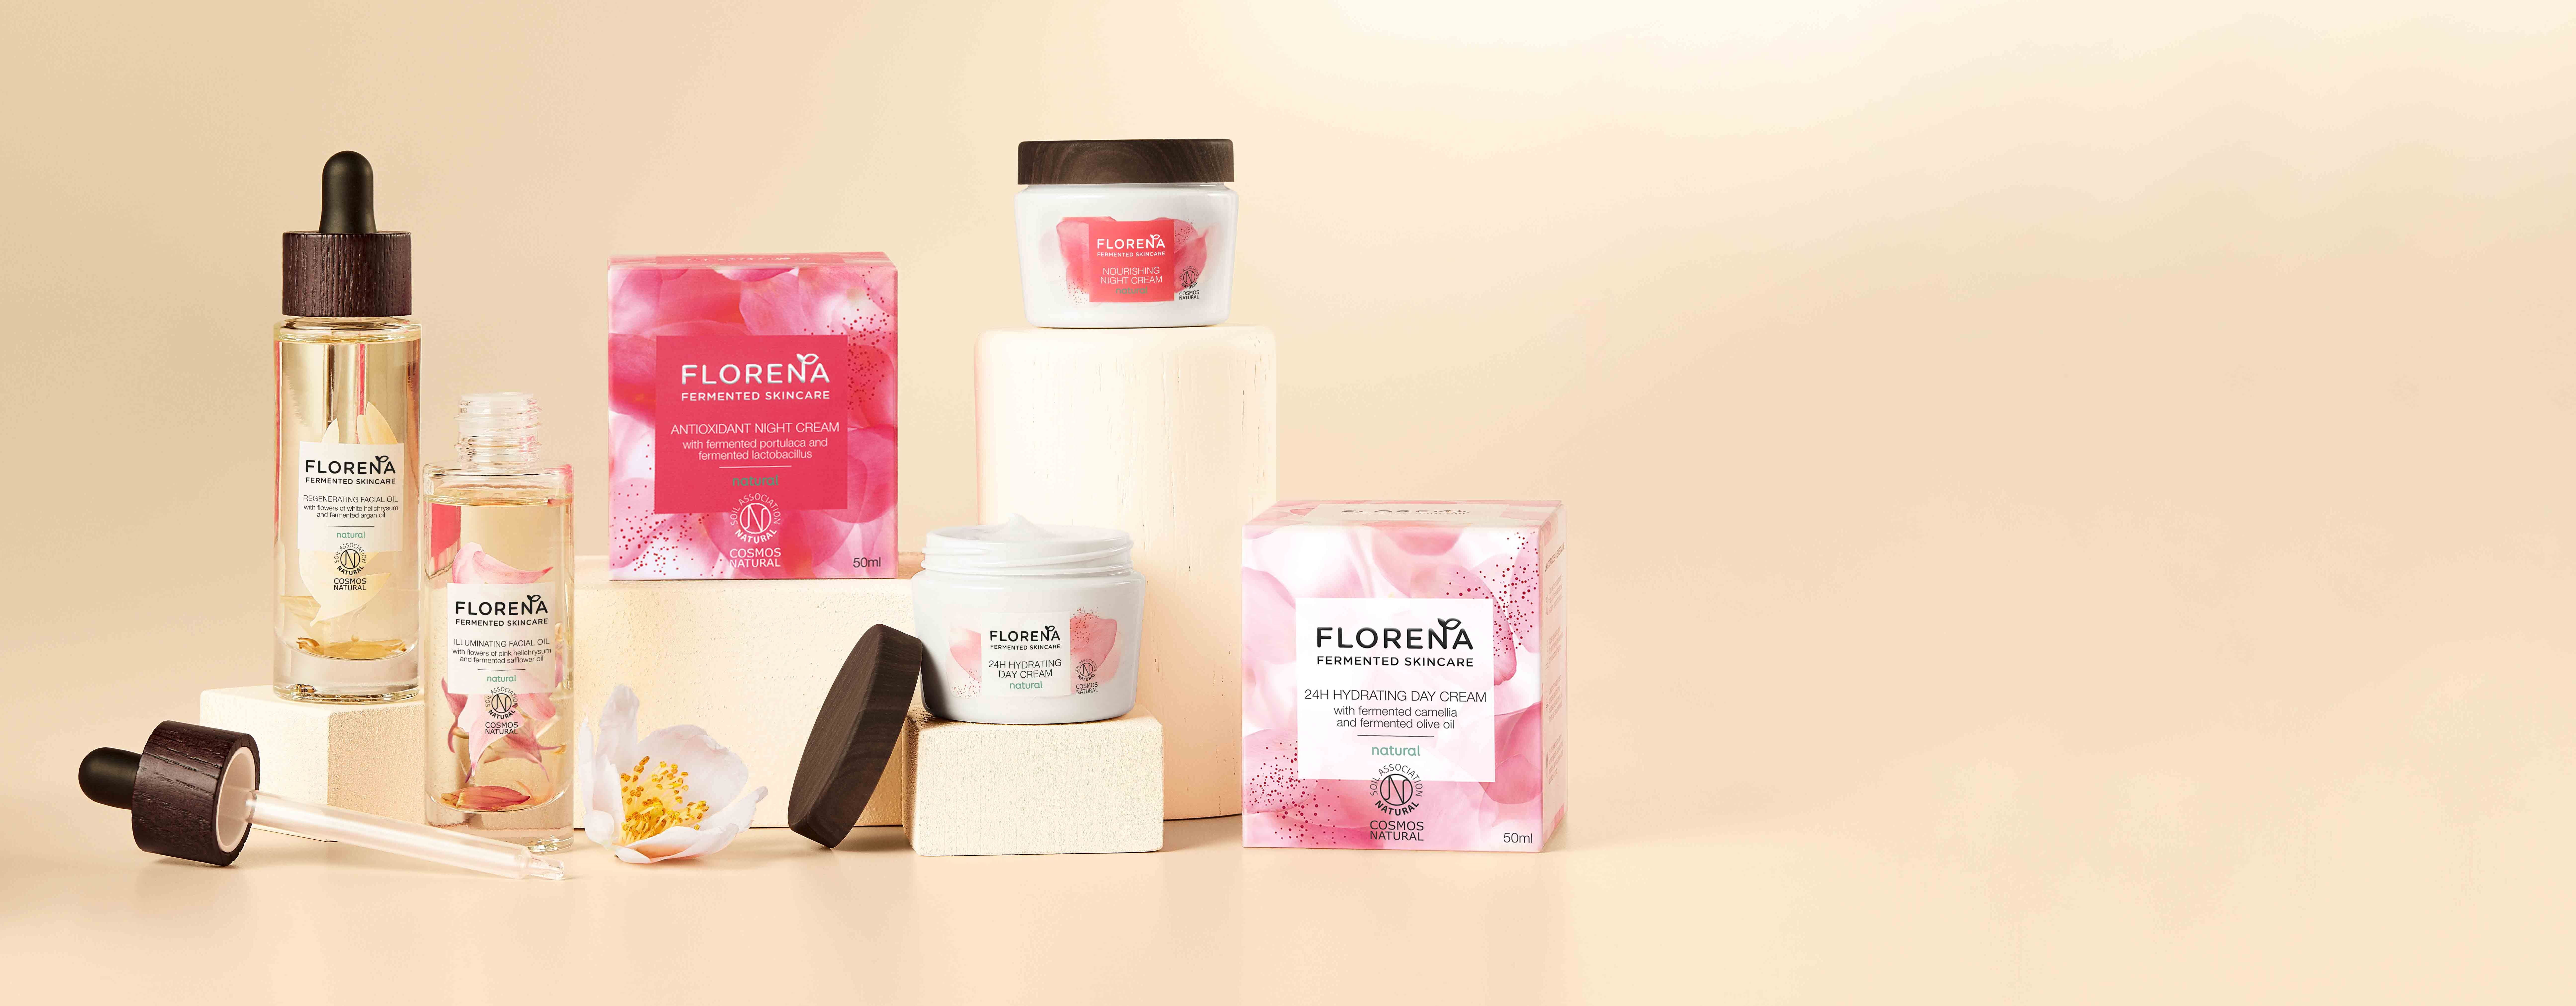 florena fermented skincare products